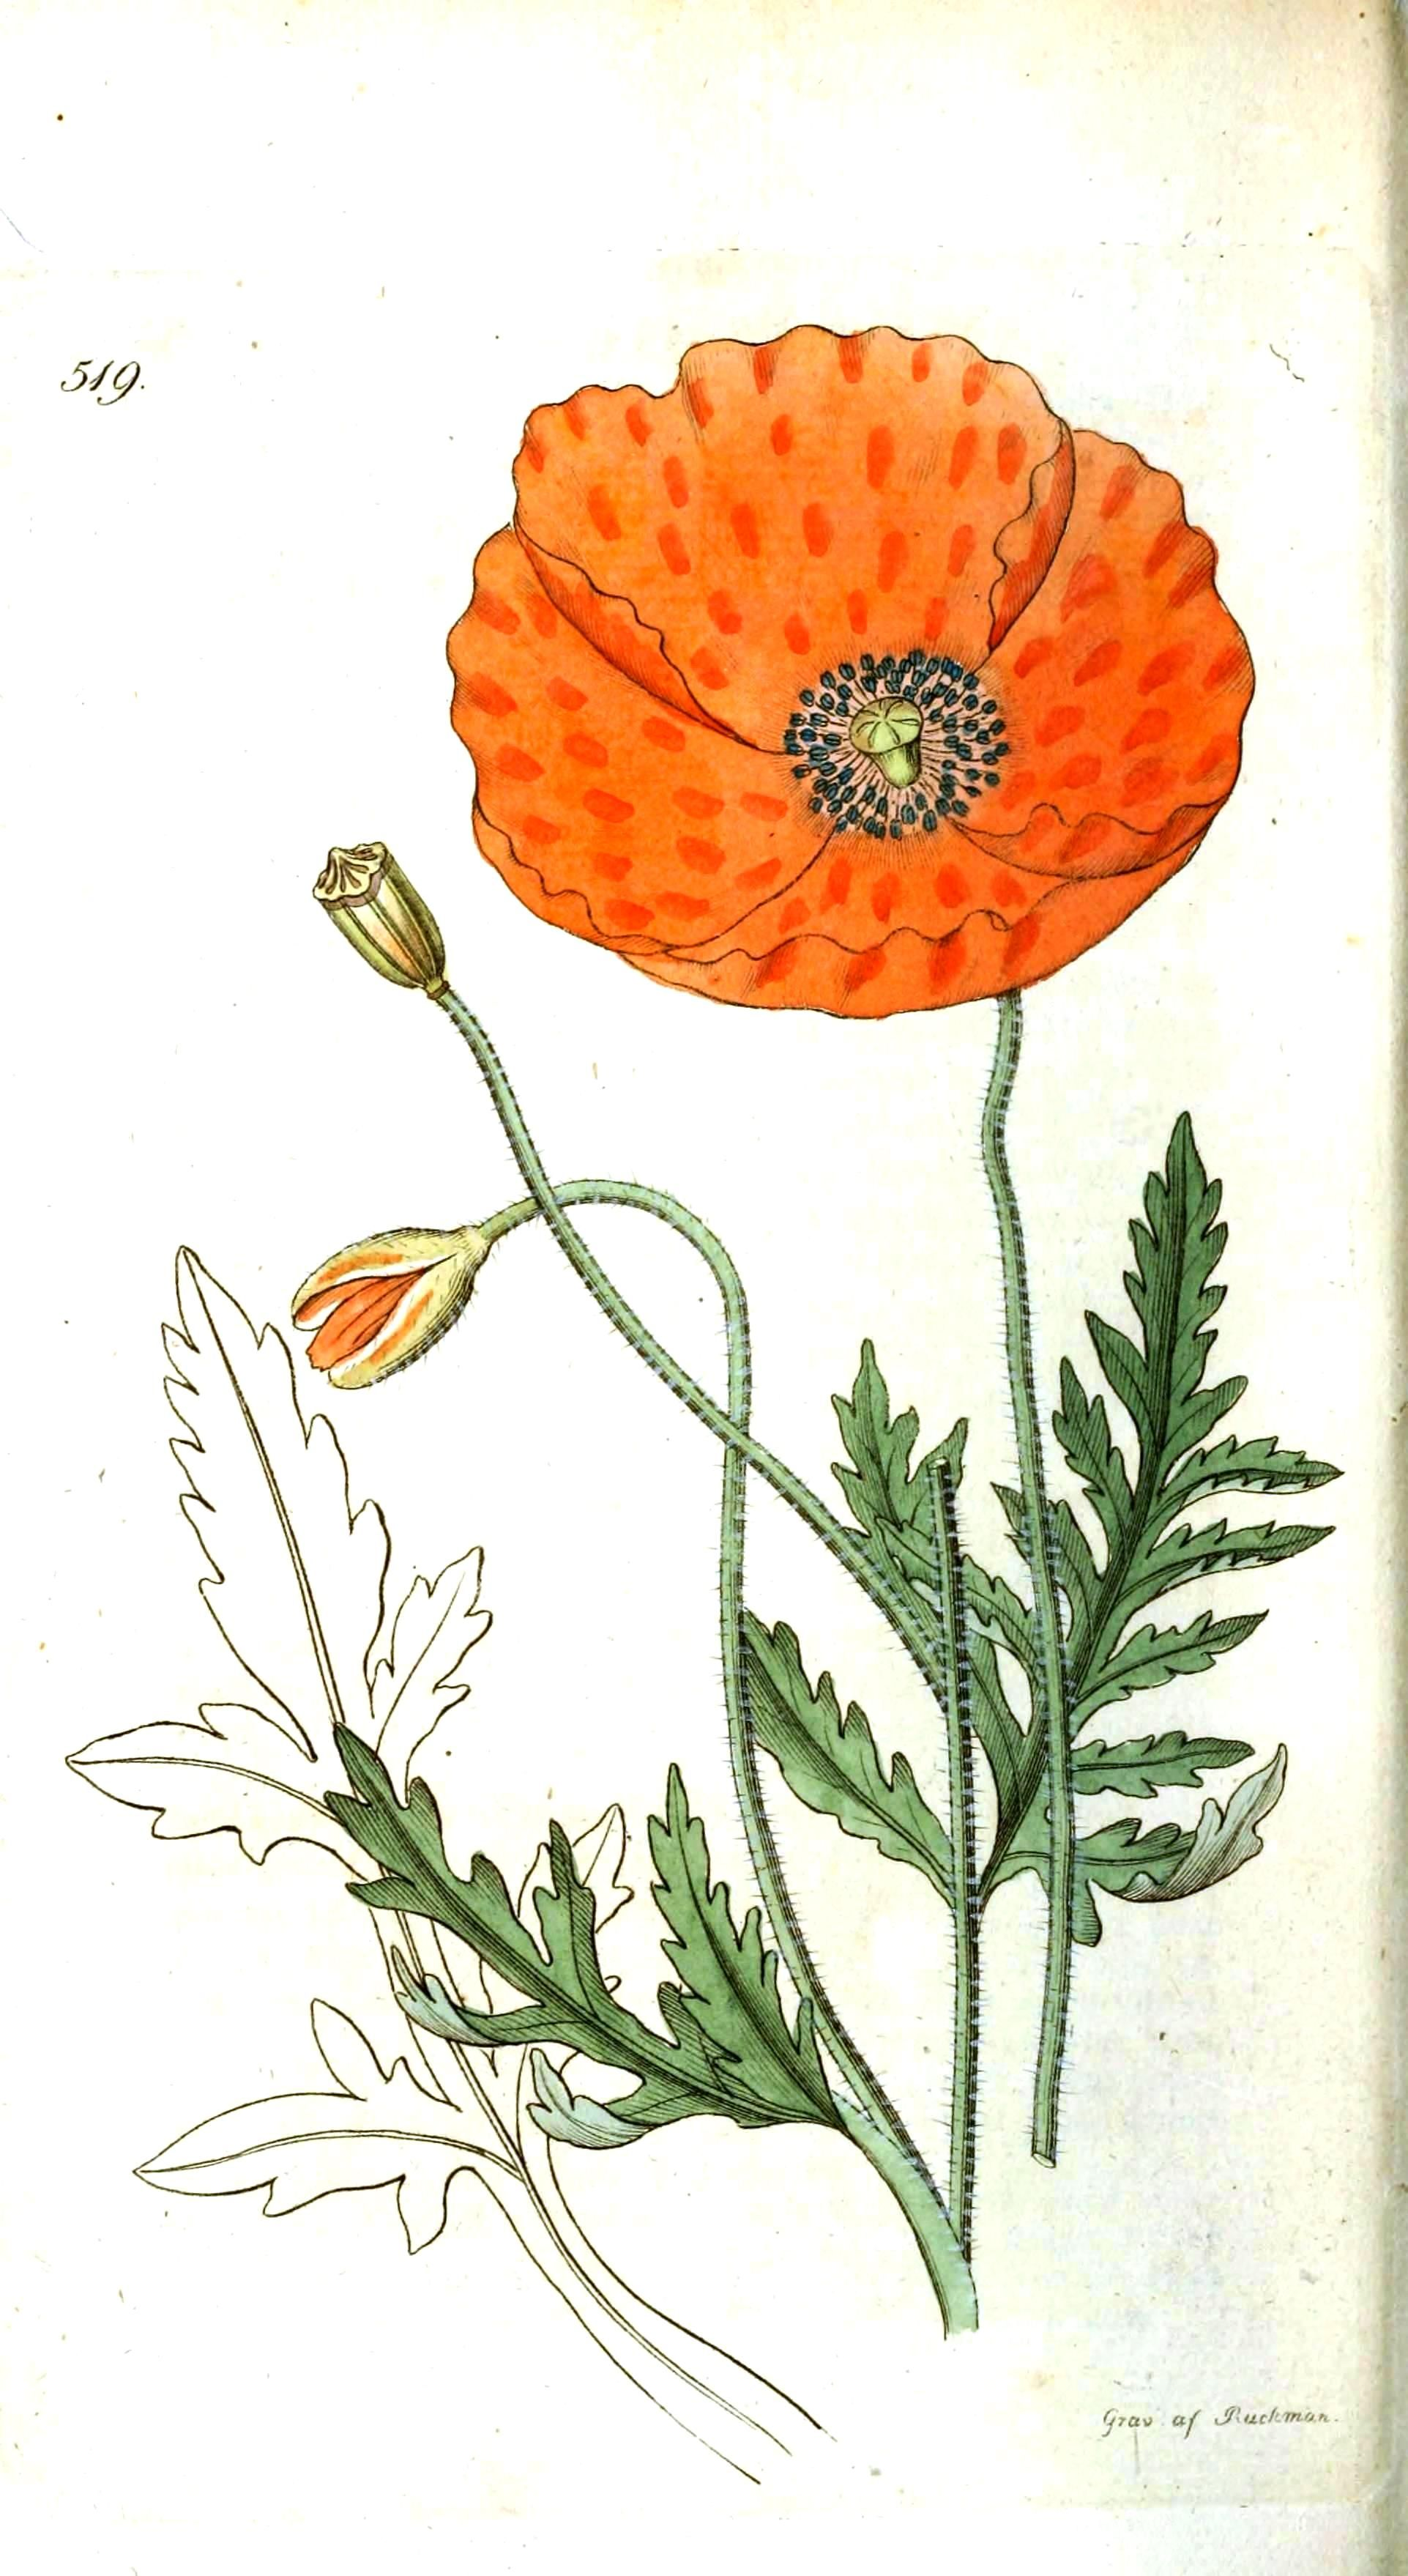 This Is A Vintage Illustration Of An Icelandic Poppy From A